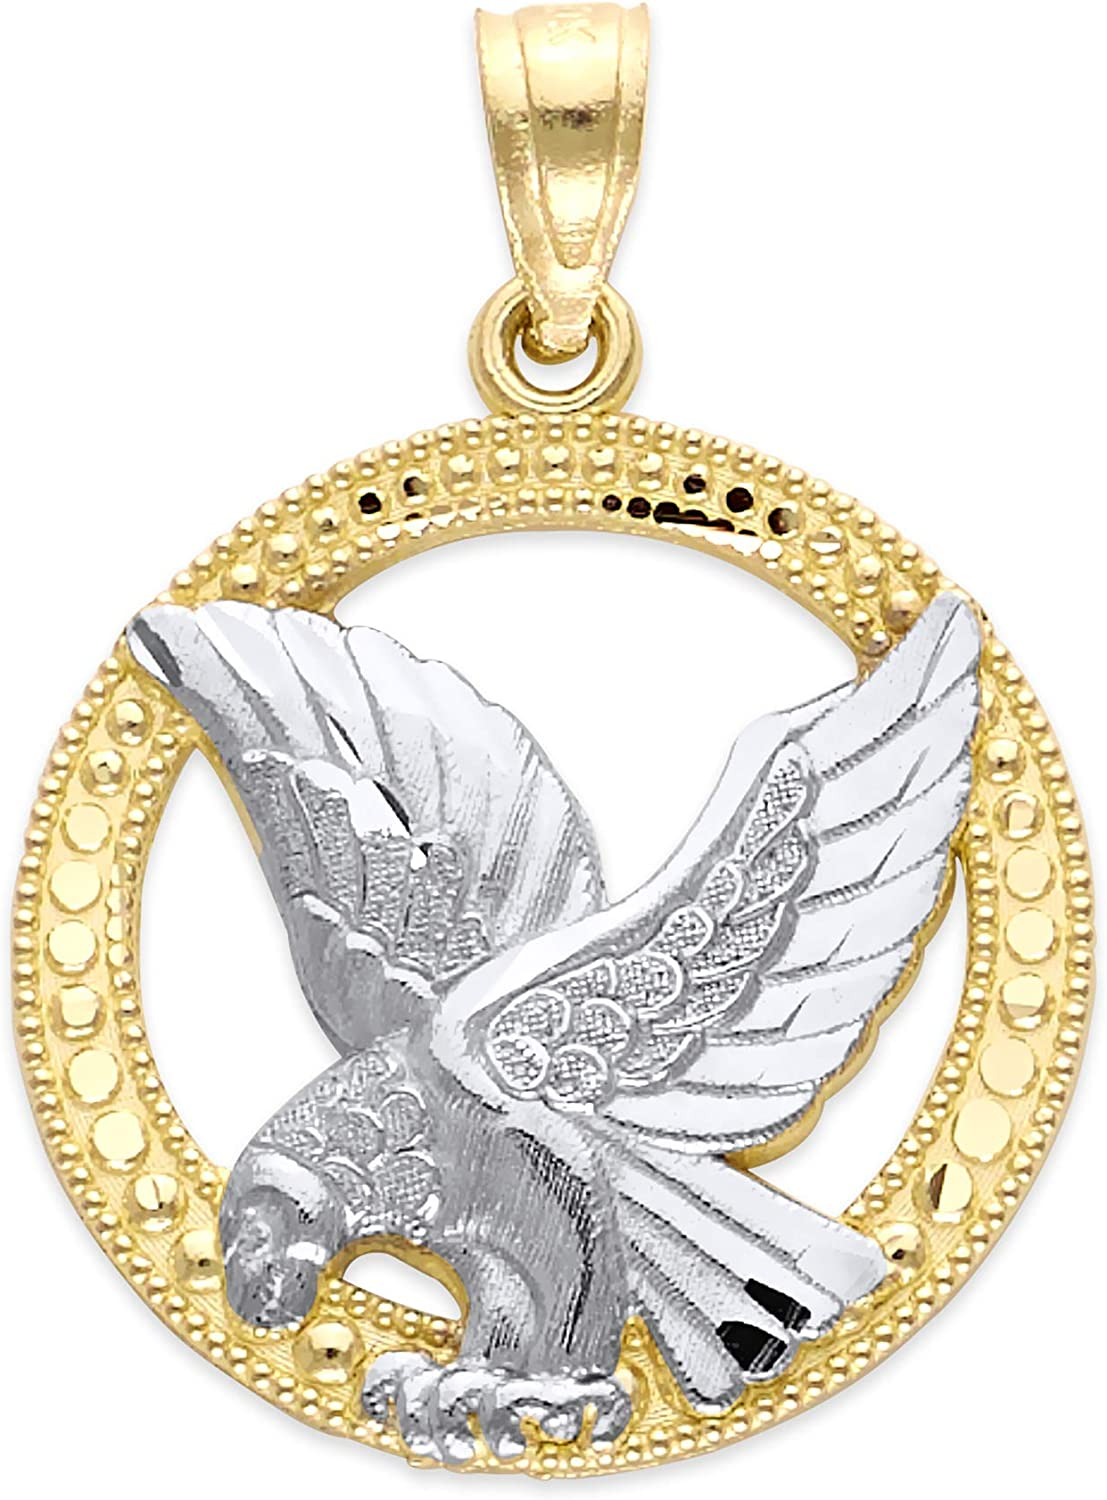 10k Real Solid Yellow Gold Eagle Pendant, Dainty Two Tone Animal Jewelry Charm Symbolizing Strength and Pride